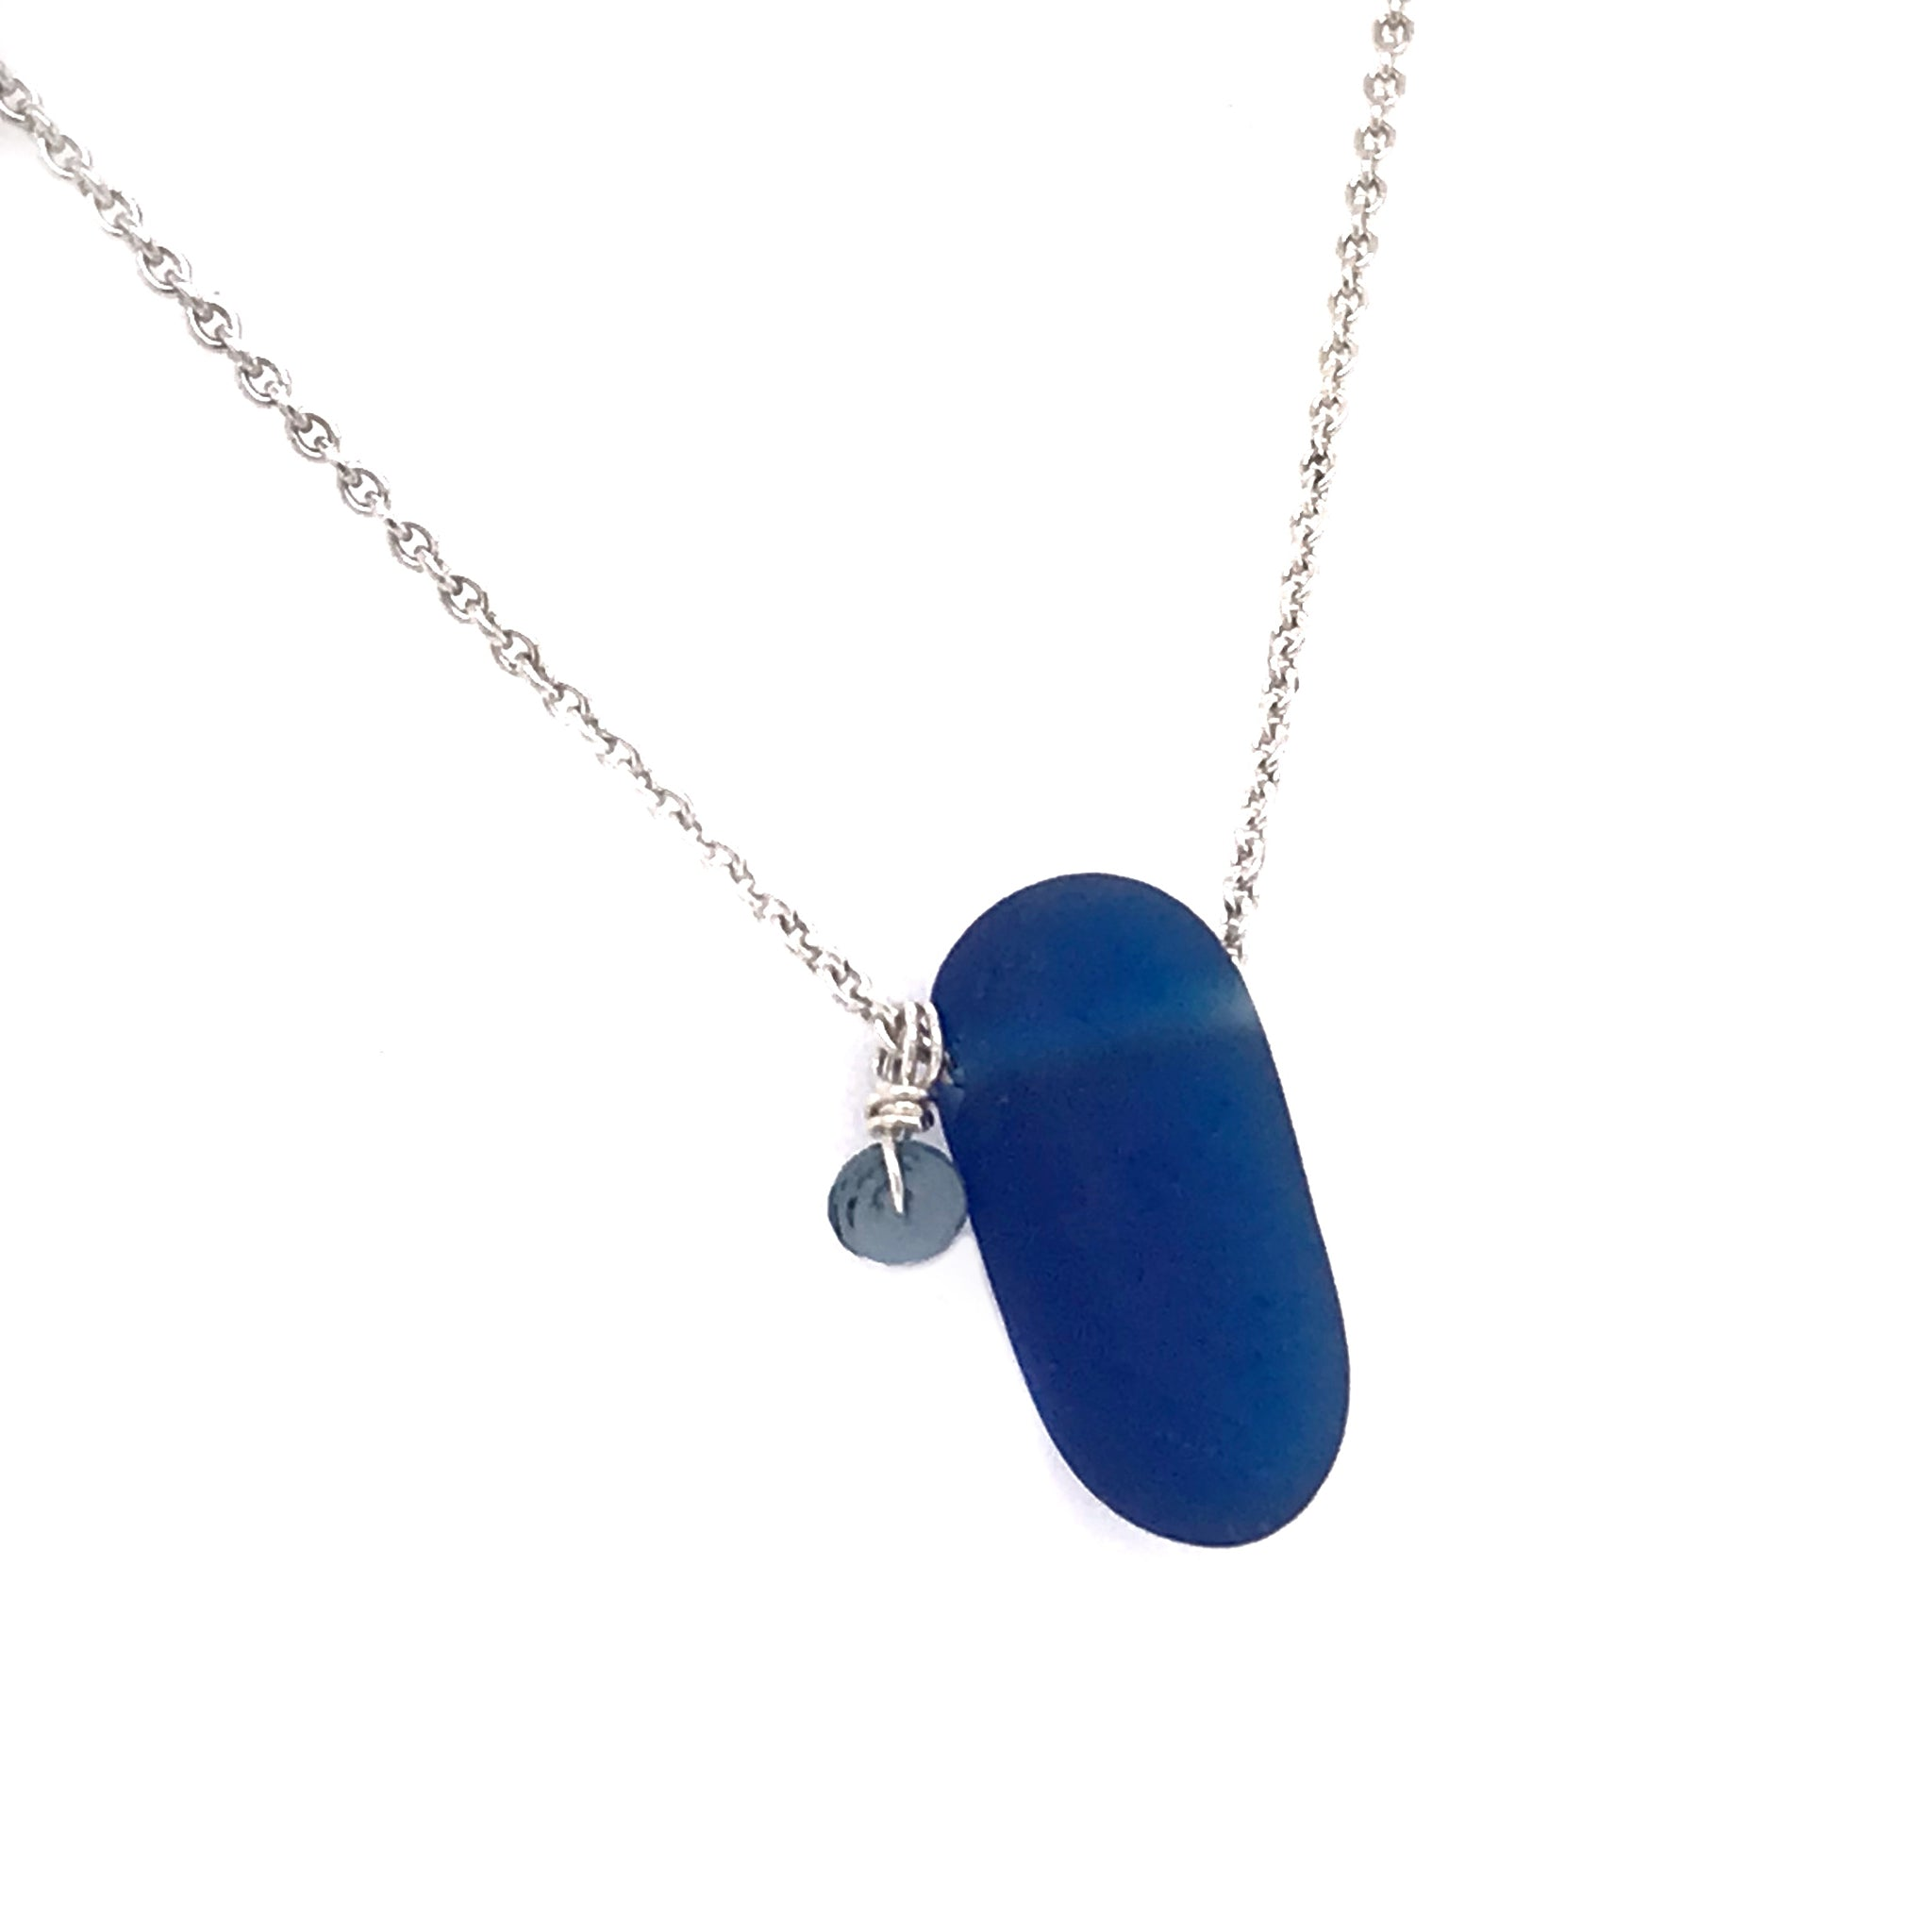 cobalt blue sea glass necklace kriket broadhurst jewellery Sydney store